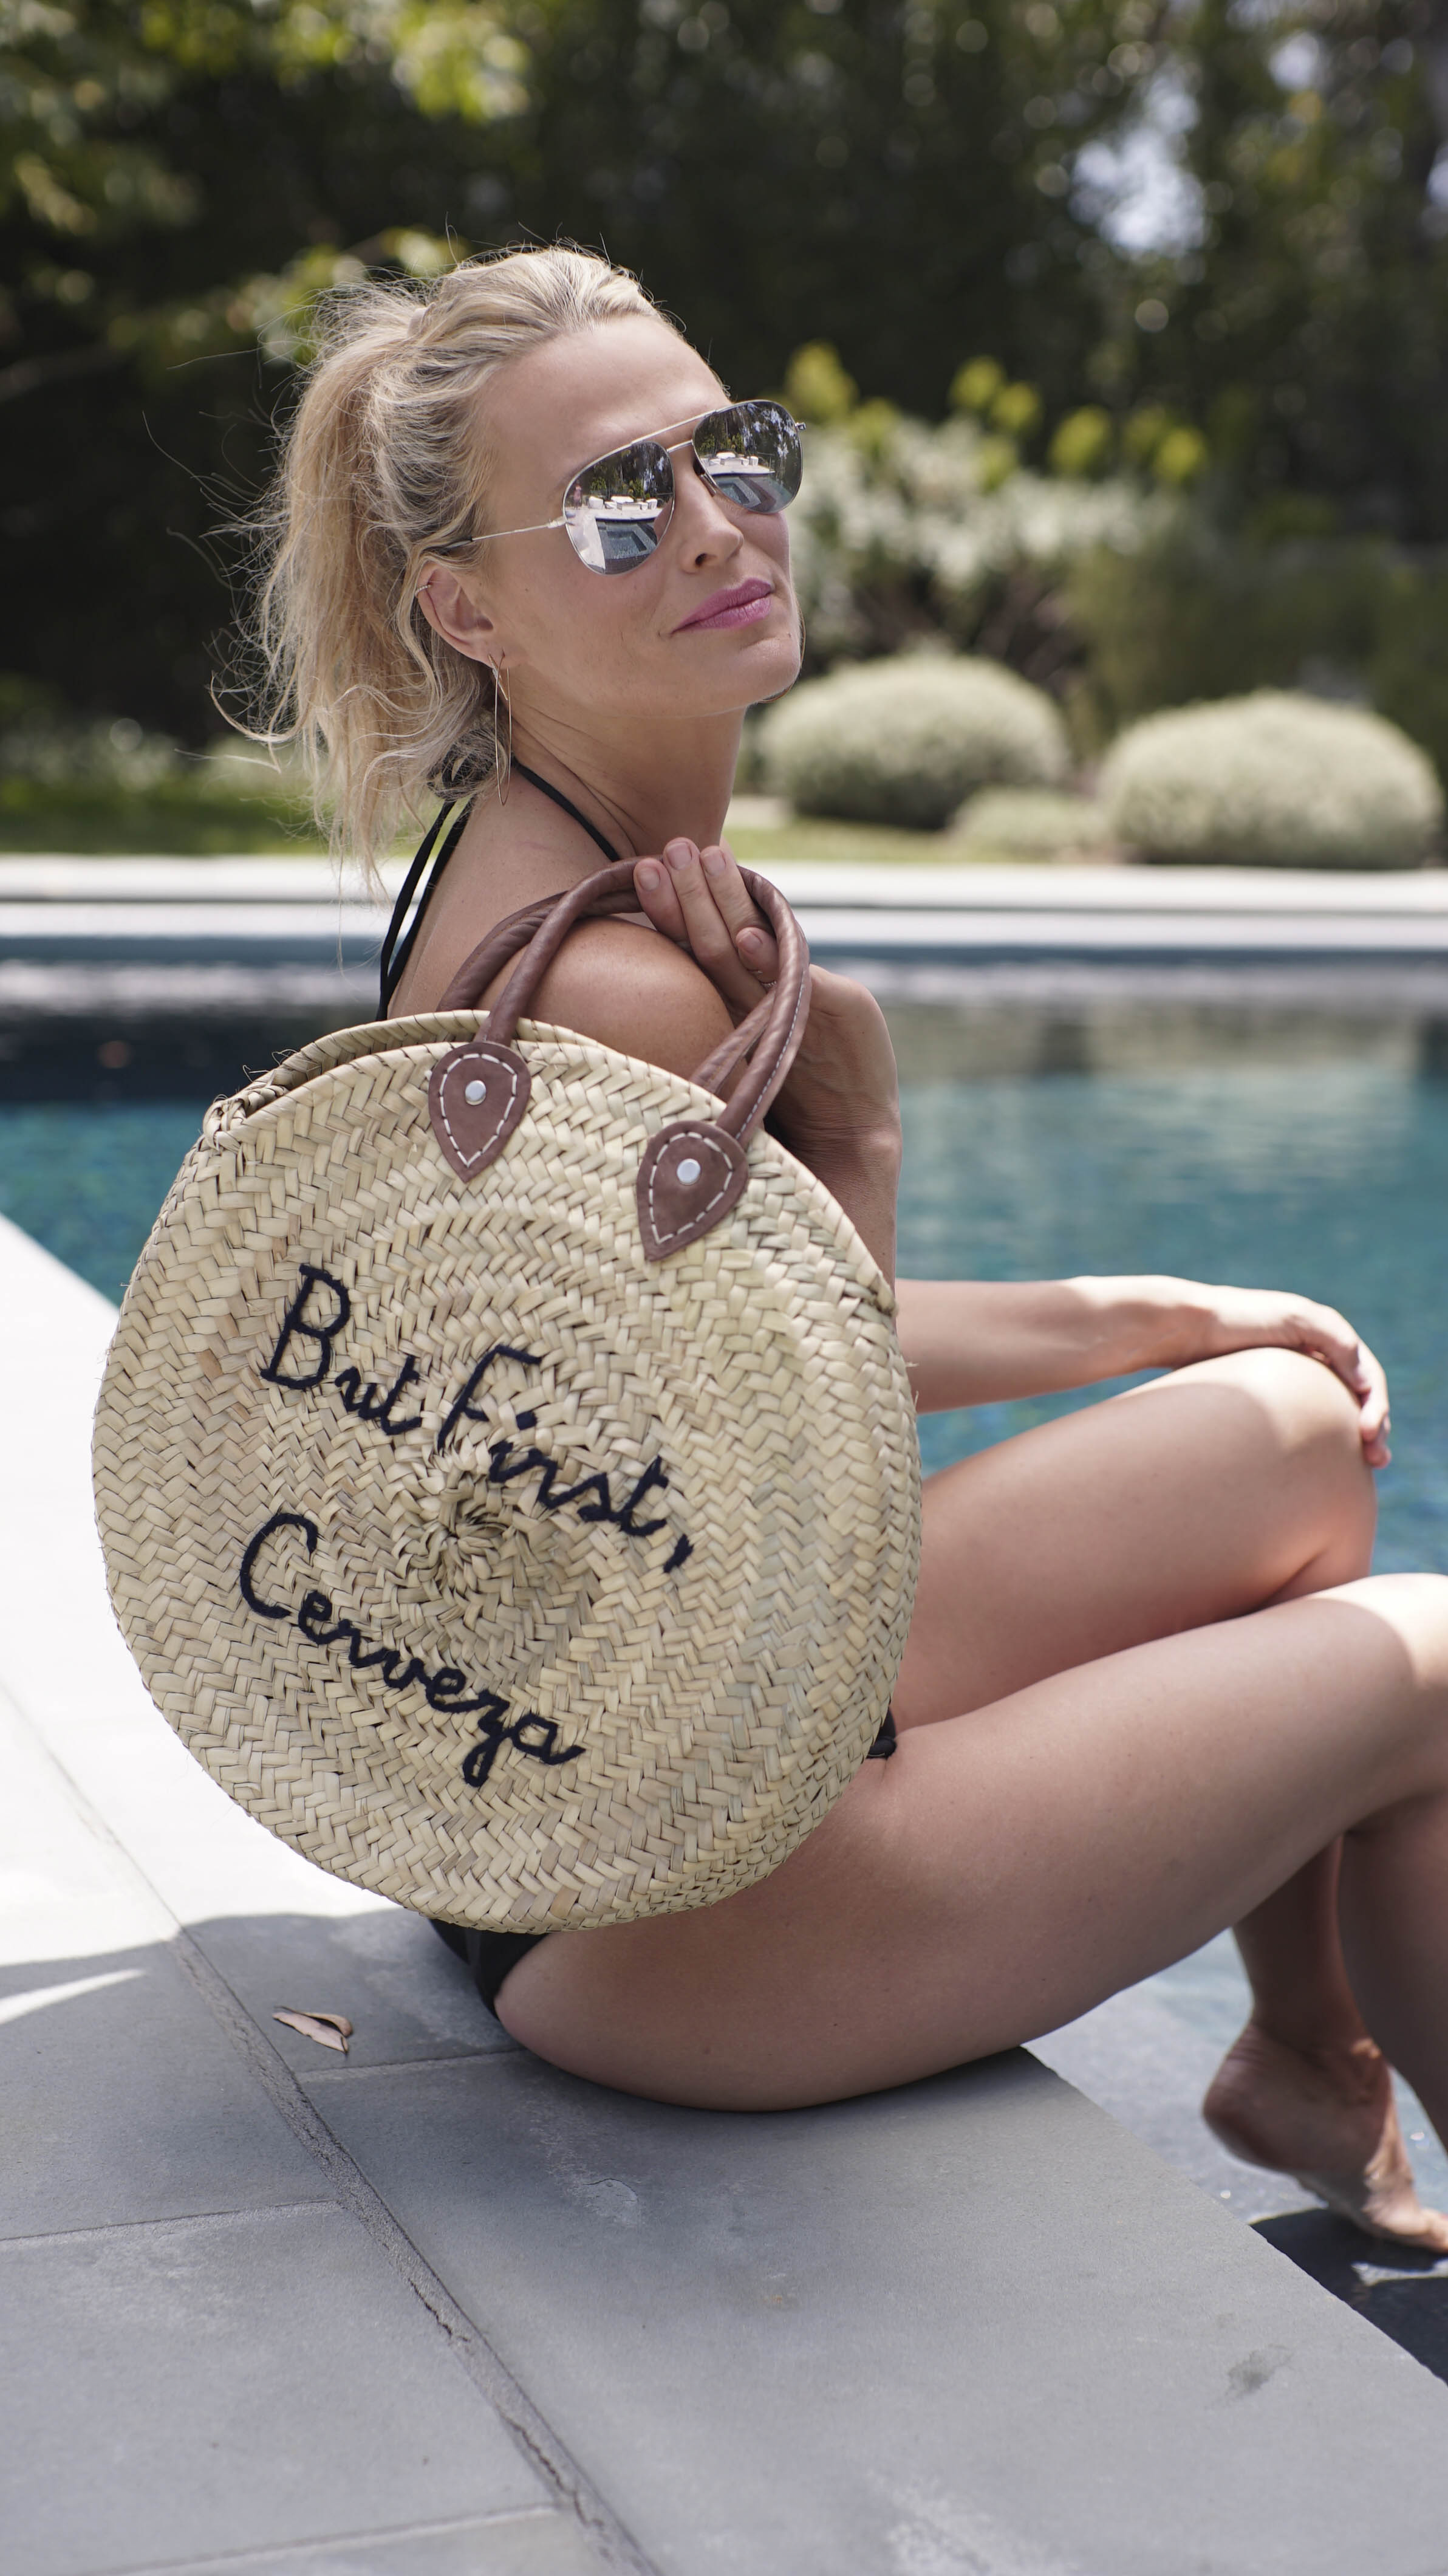 VIDEO: Poolside Makeup Tutorial Full of SPF! (Photography: Tim & Co)